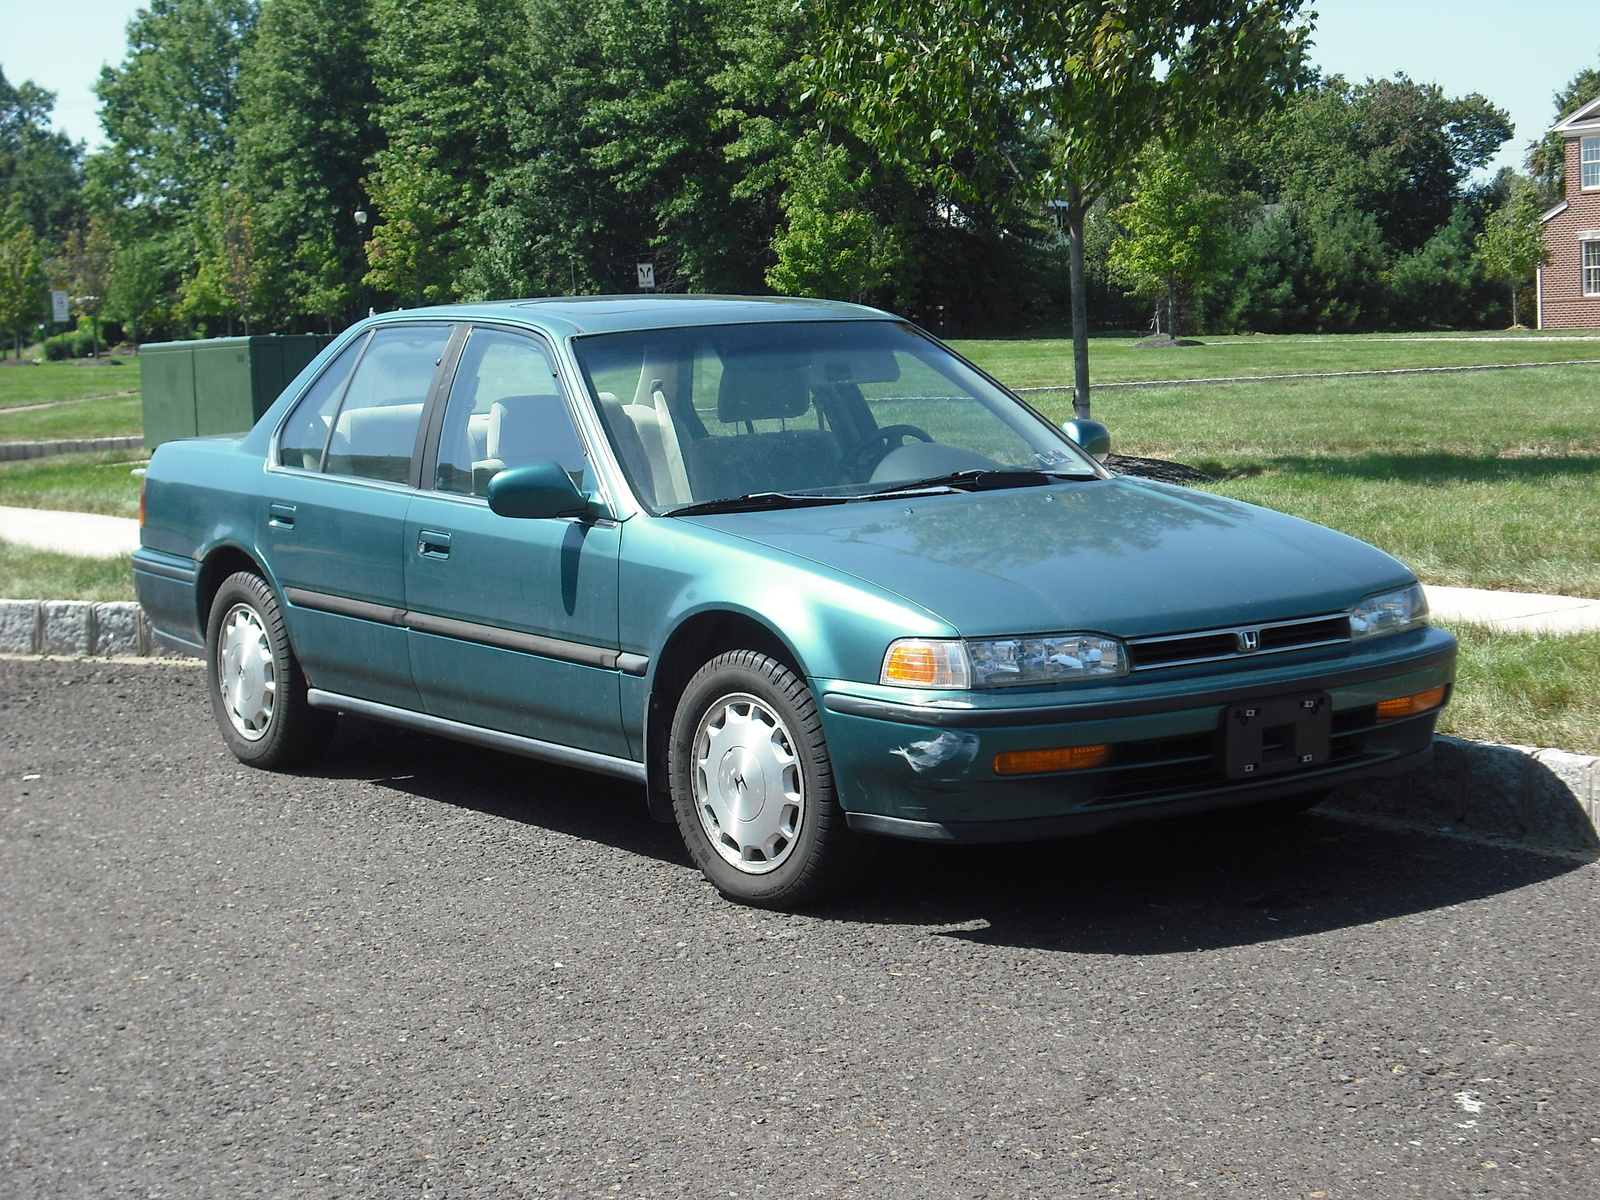 1993 Honda Accord #17